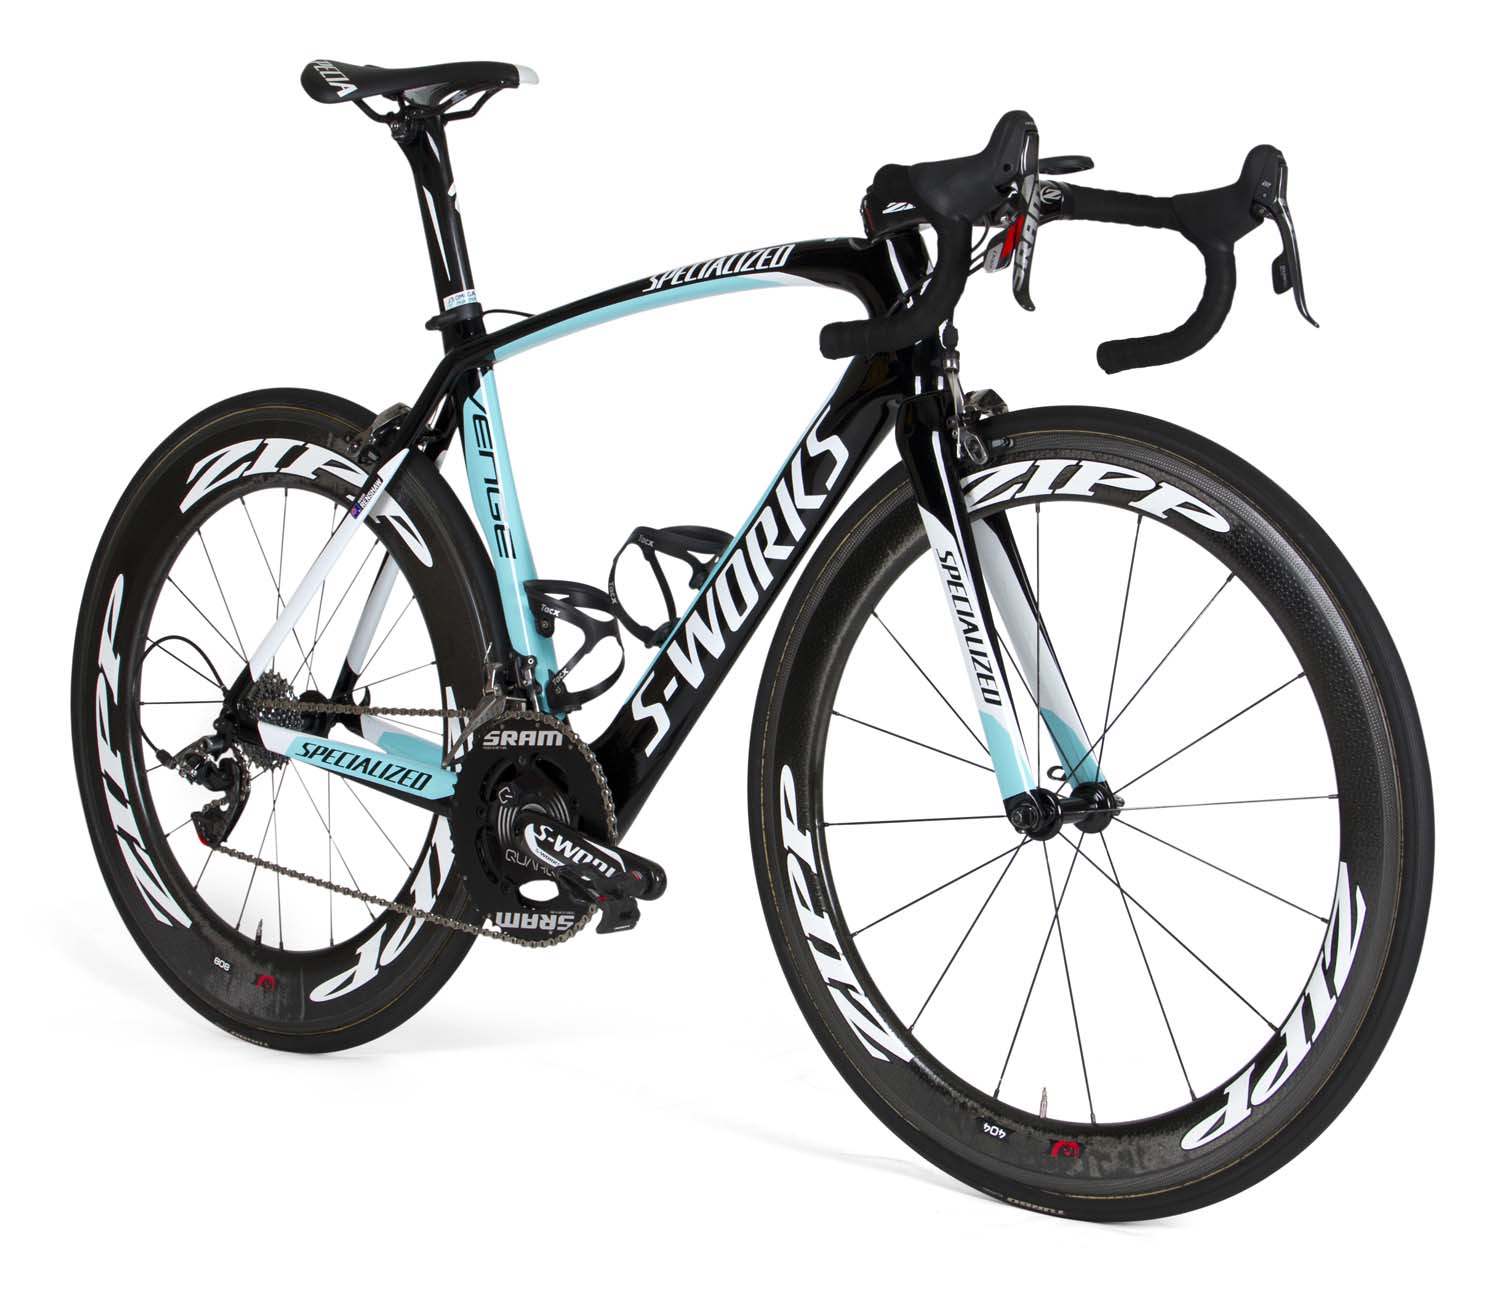 OPQ_Specialized Venge_Renshaw_Main (2014)